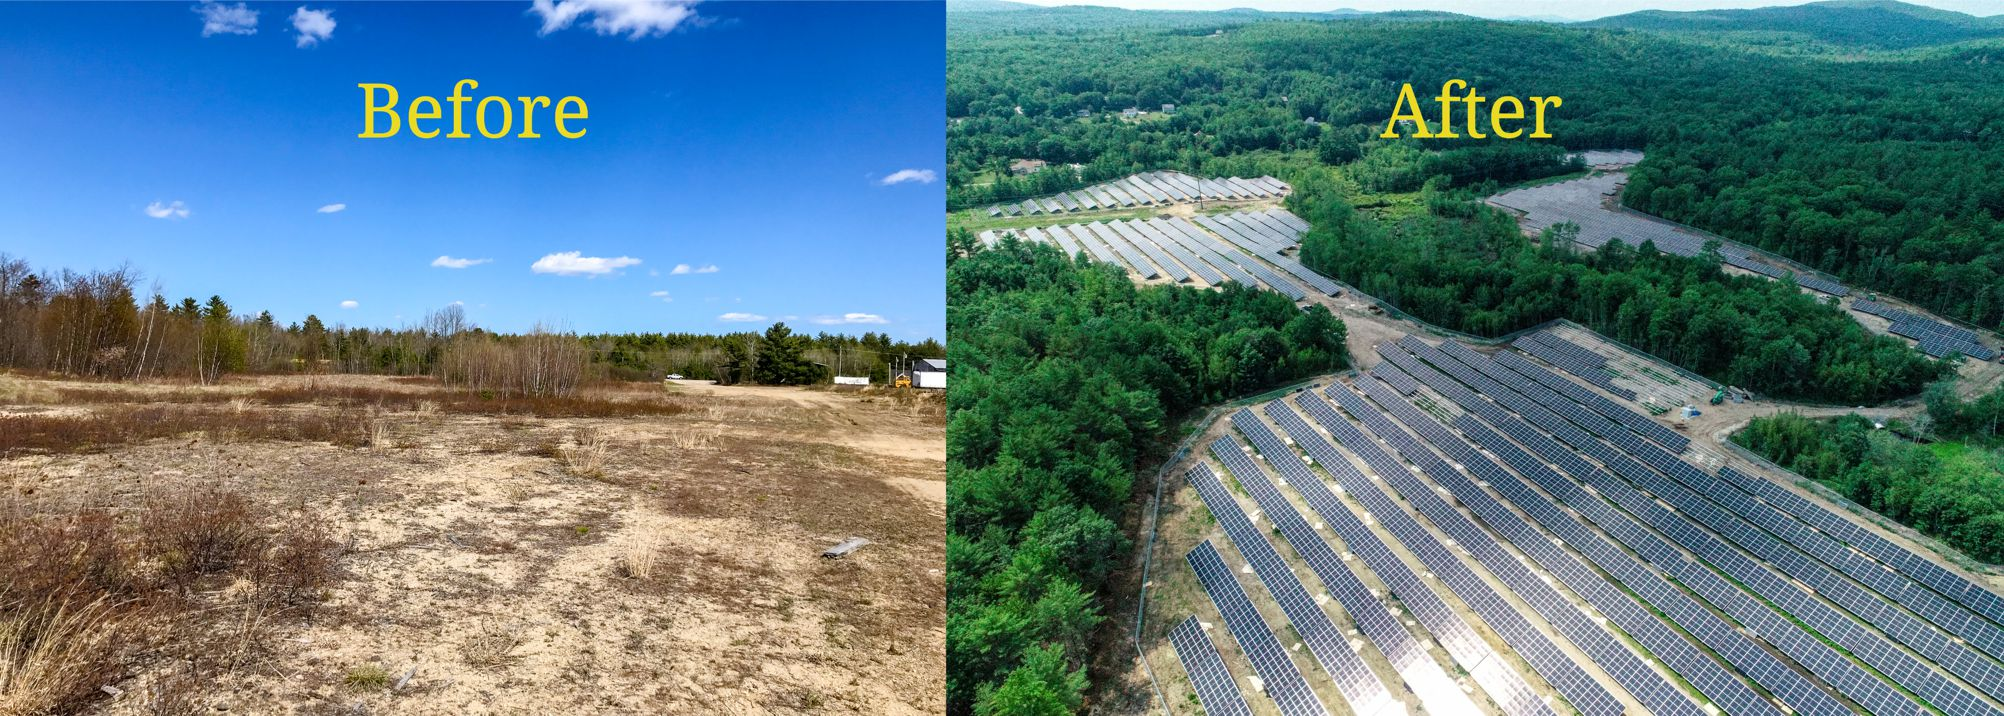 solar farm before and after